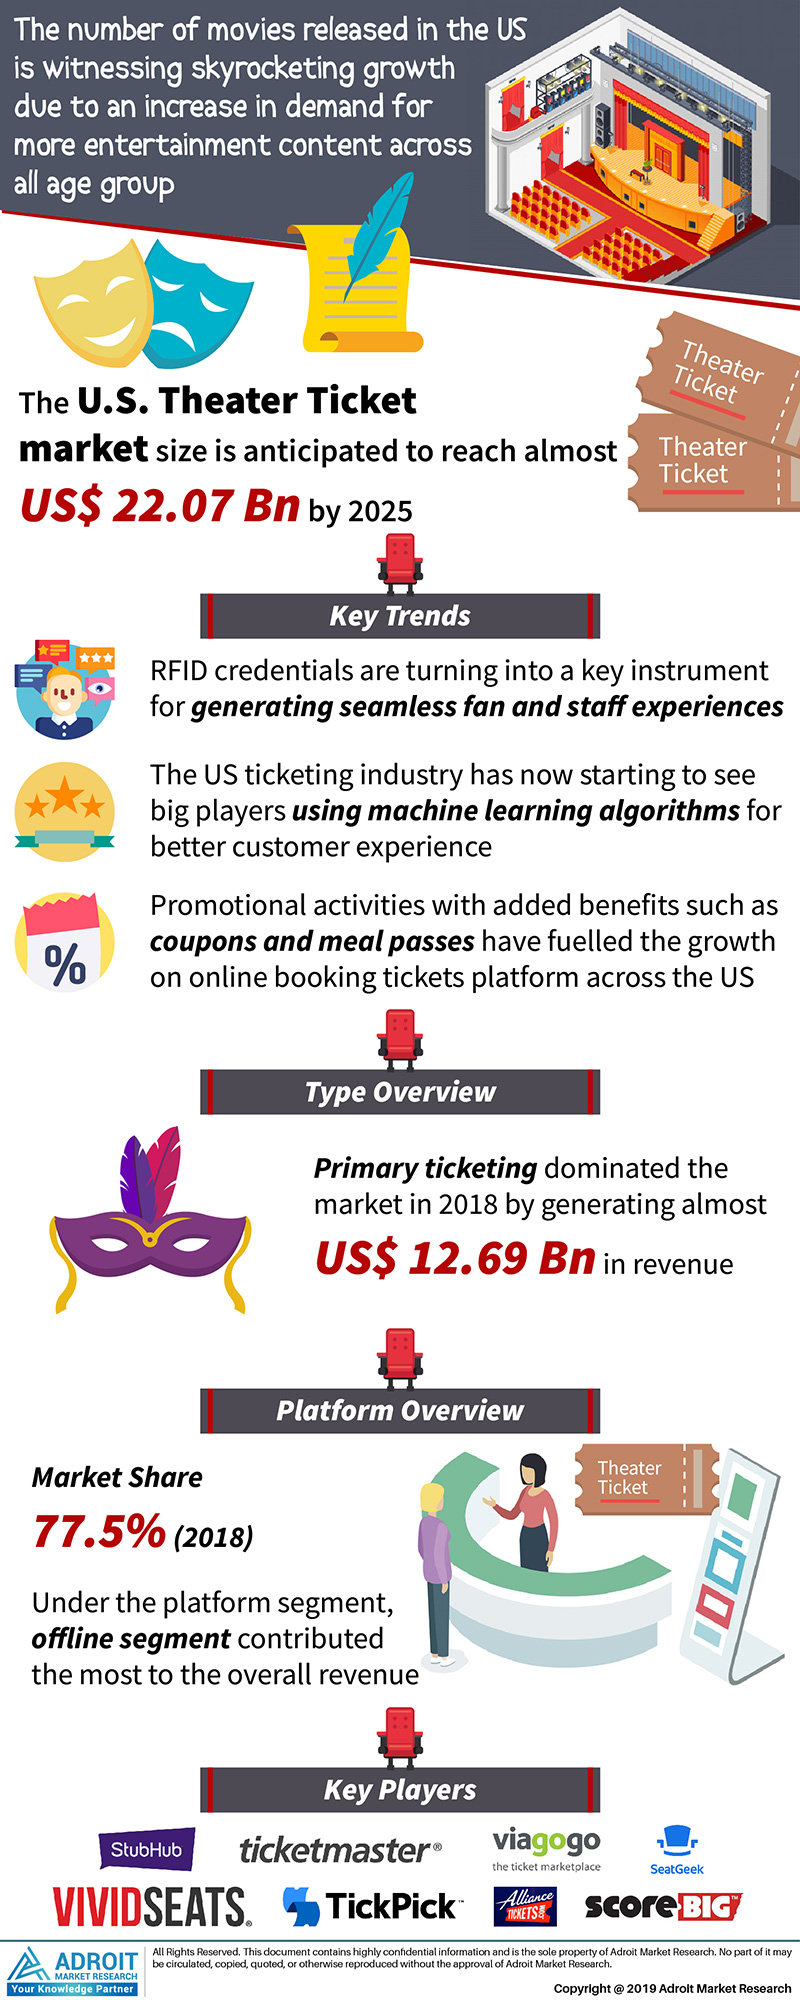 US Theatre Tickets Market Size 2017 By Type, Theatre Type, Platform, and Forecast 2019 to 2025